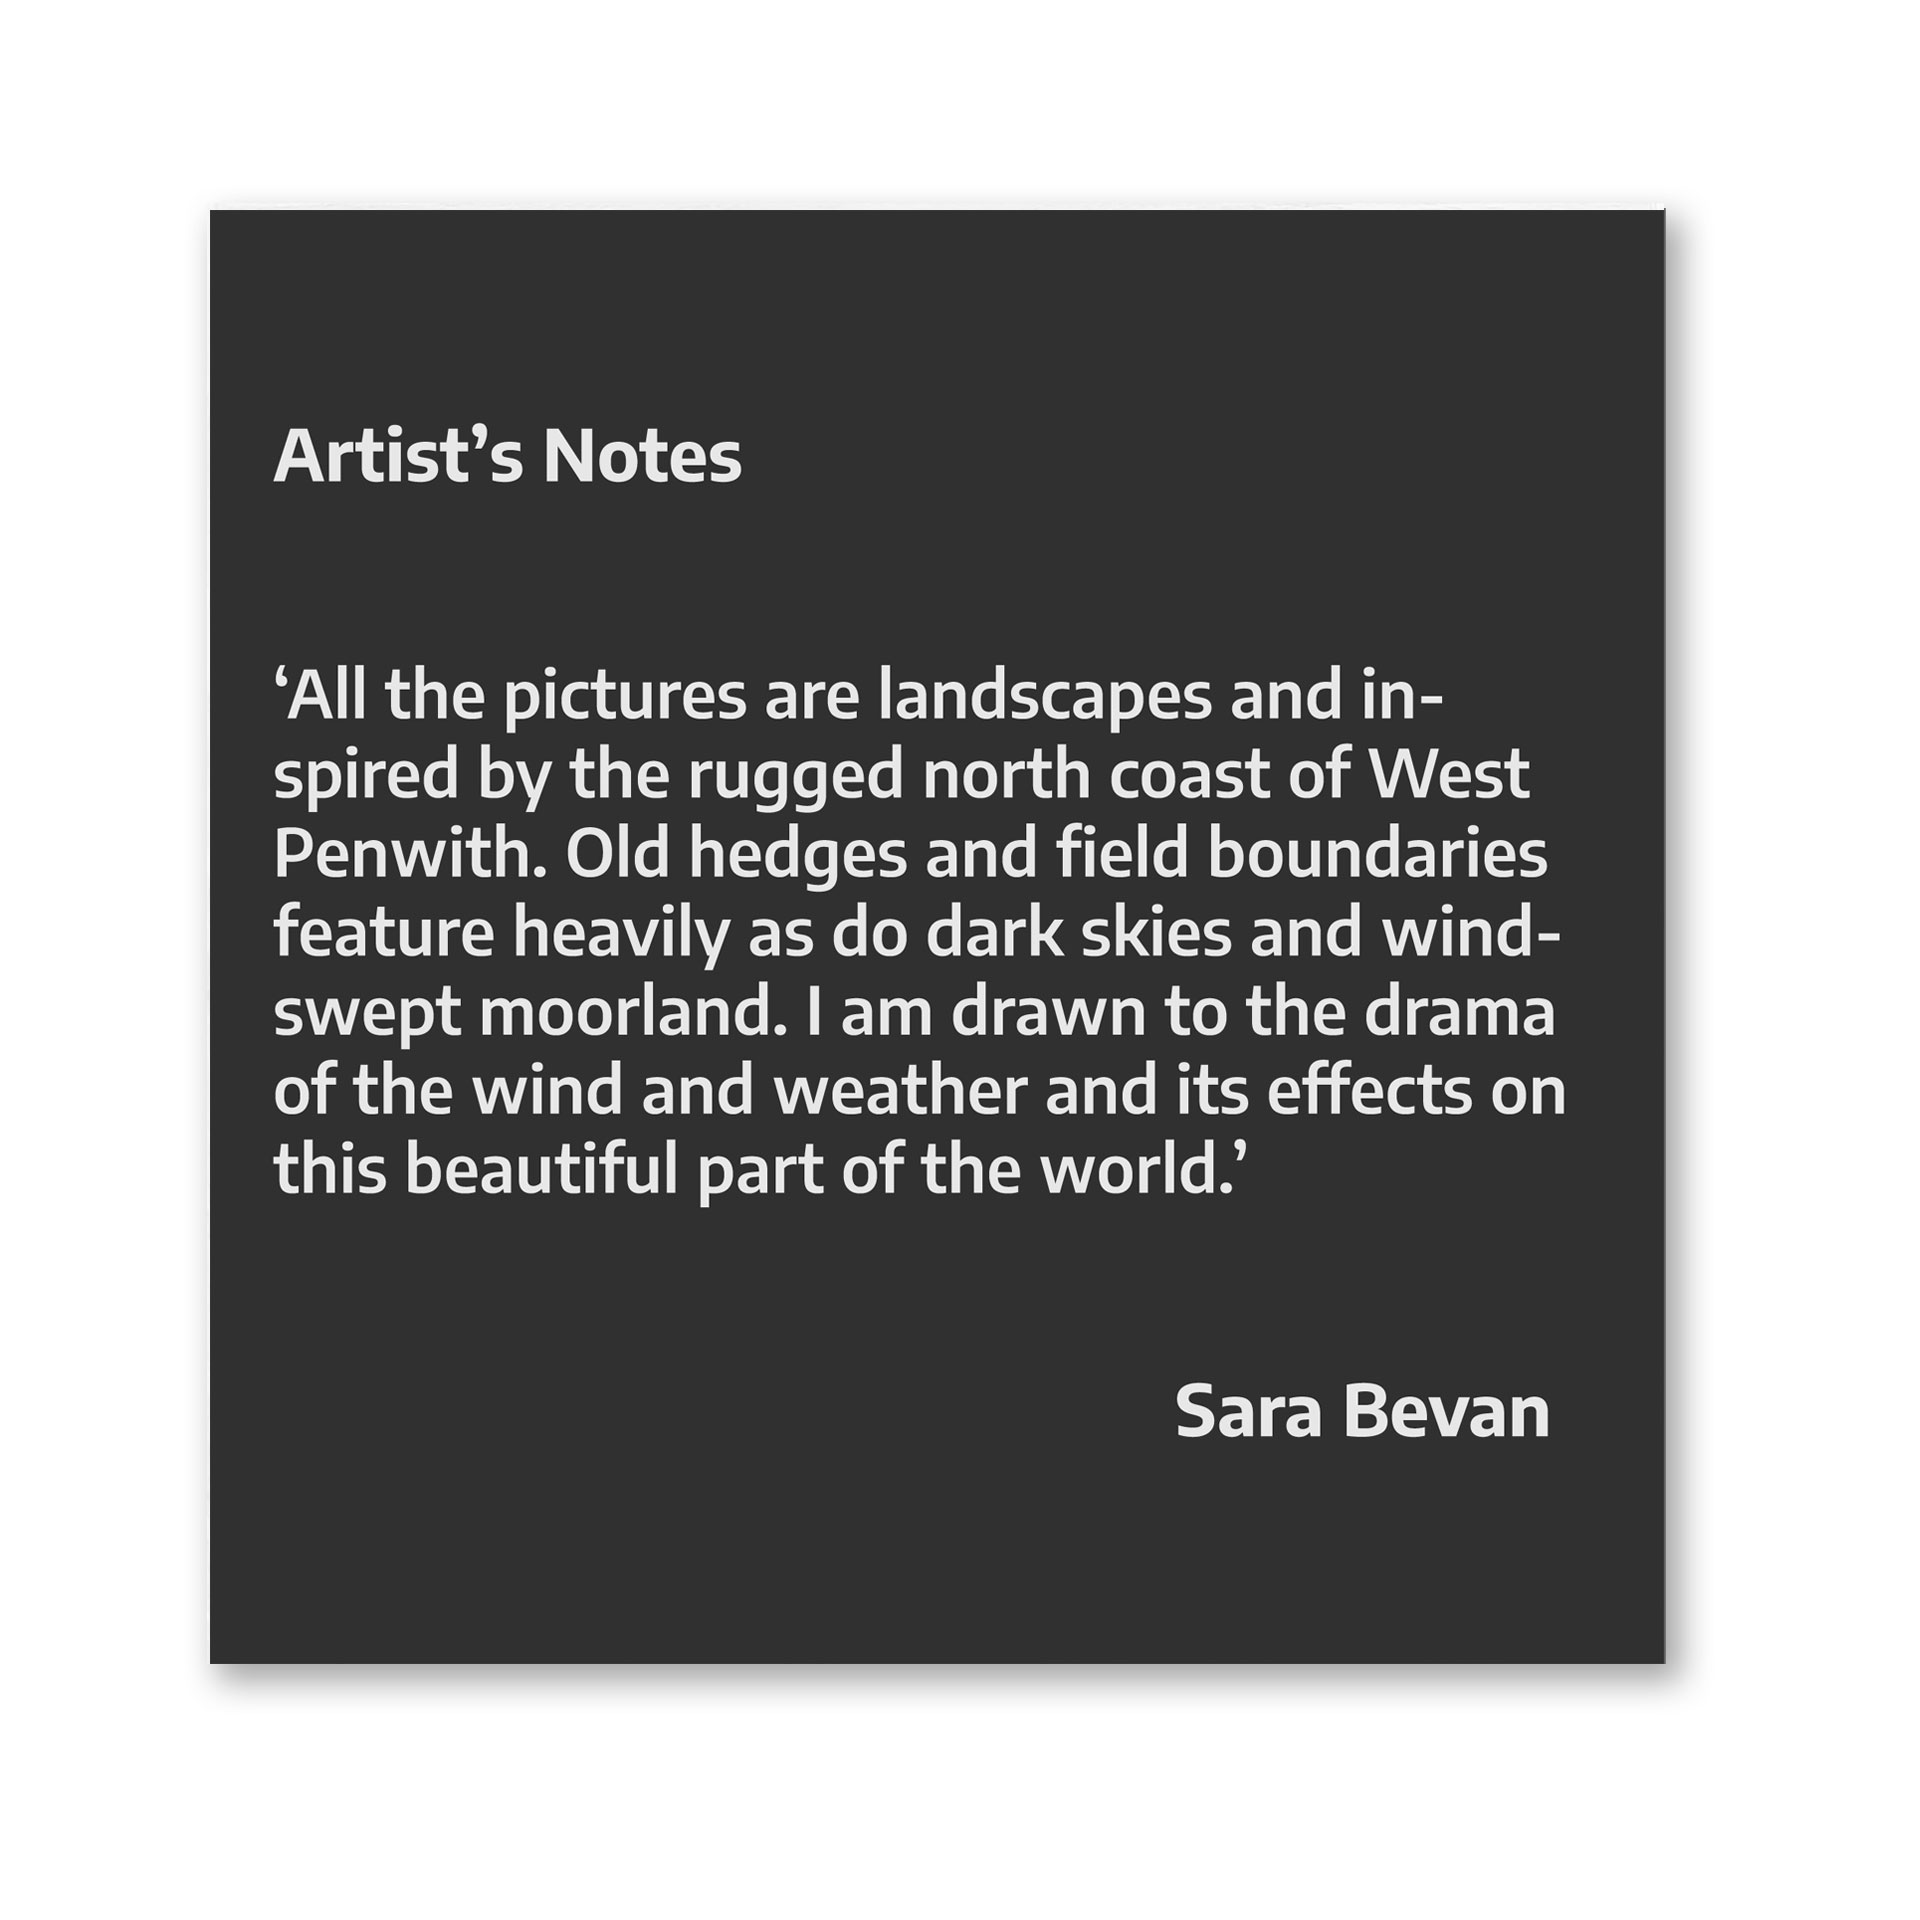 Artist's Notes